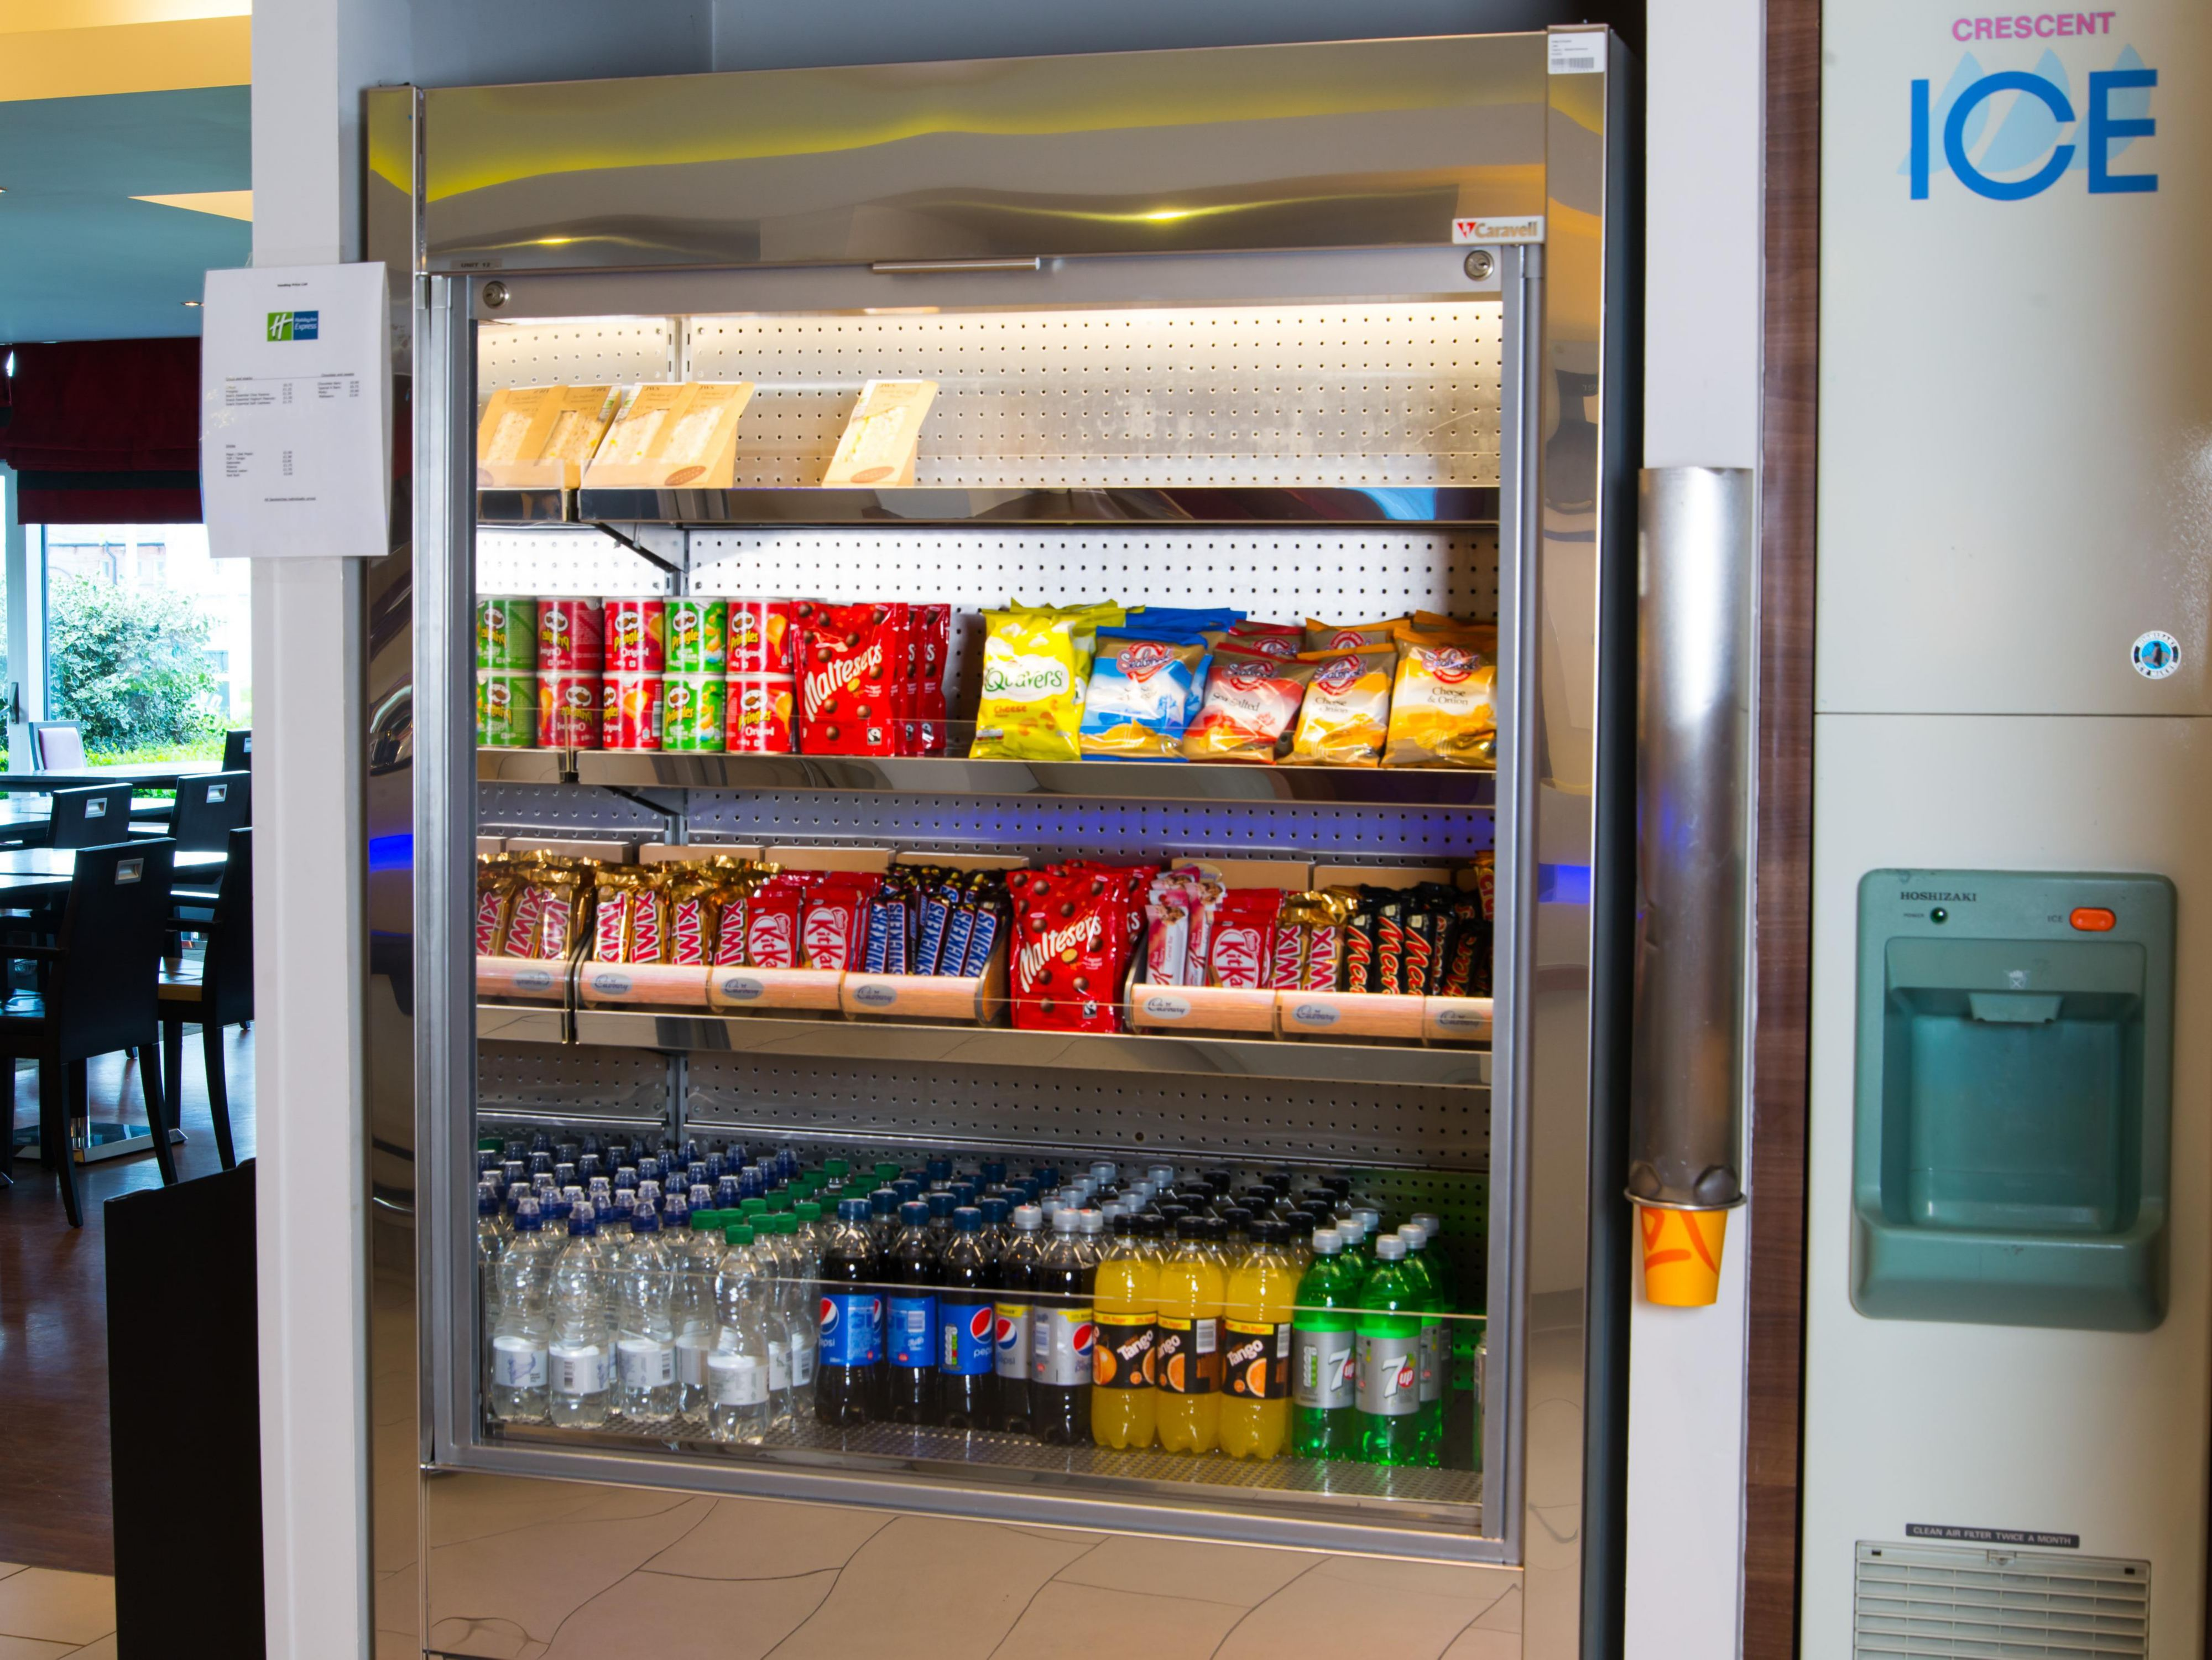 Feeling peckish? Grab a snack from our vending machine